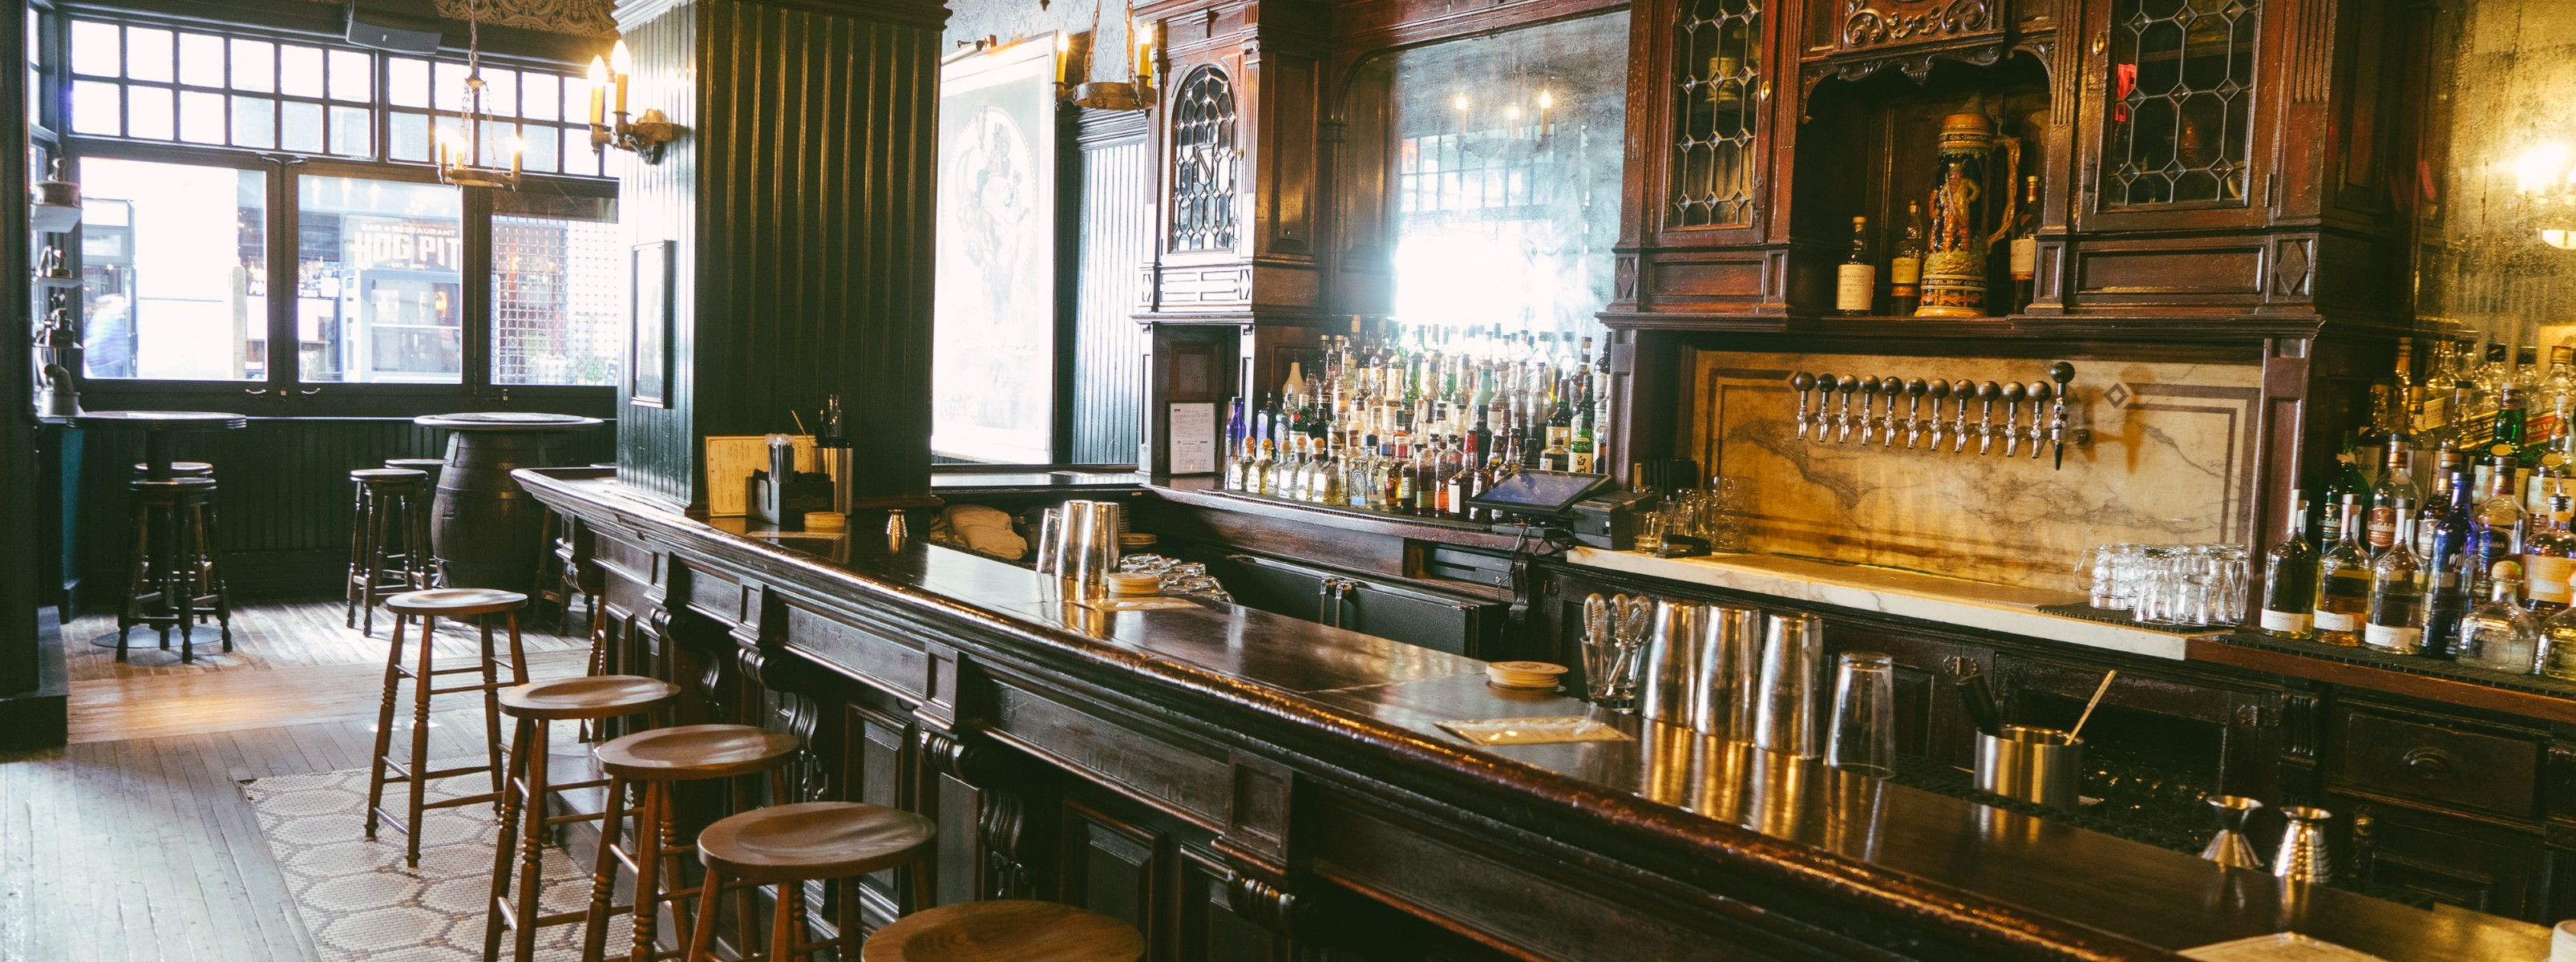 The Best Bars In Nomad - Nomad - New York - The Infatuation